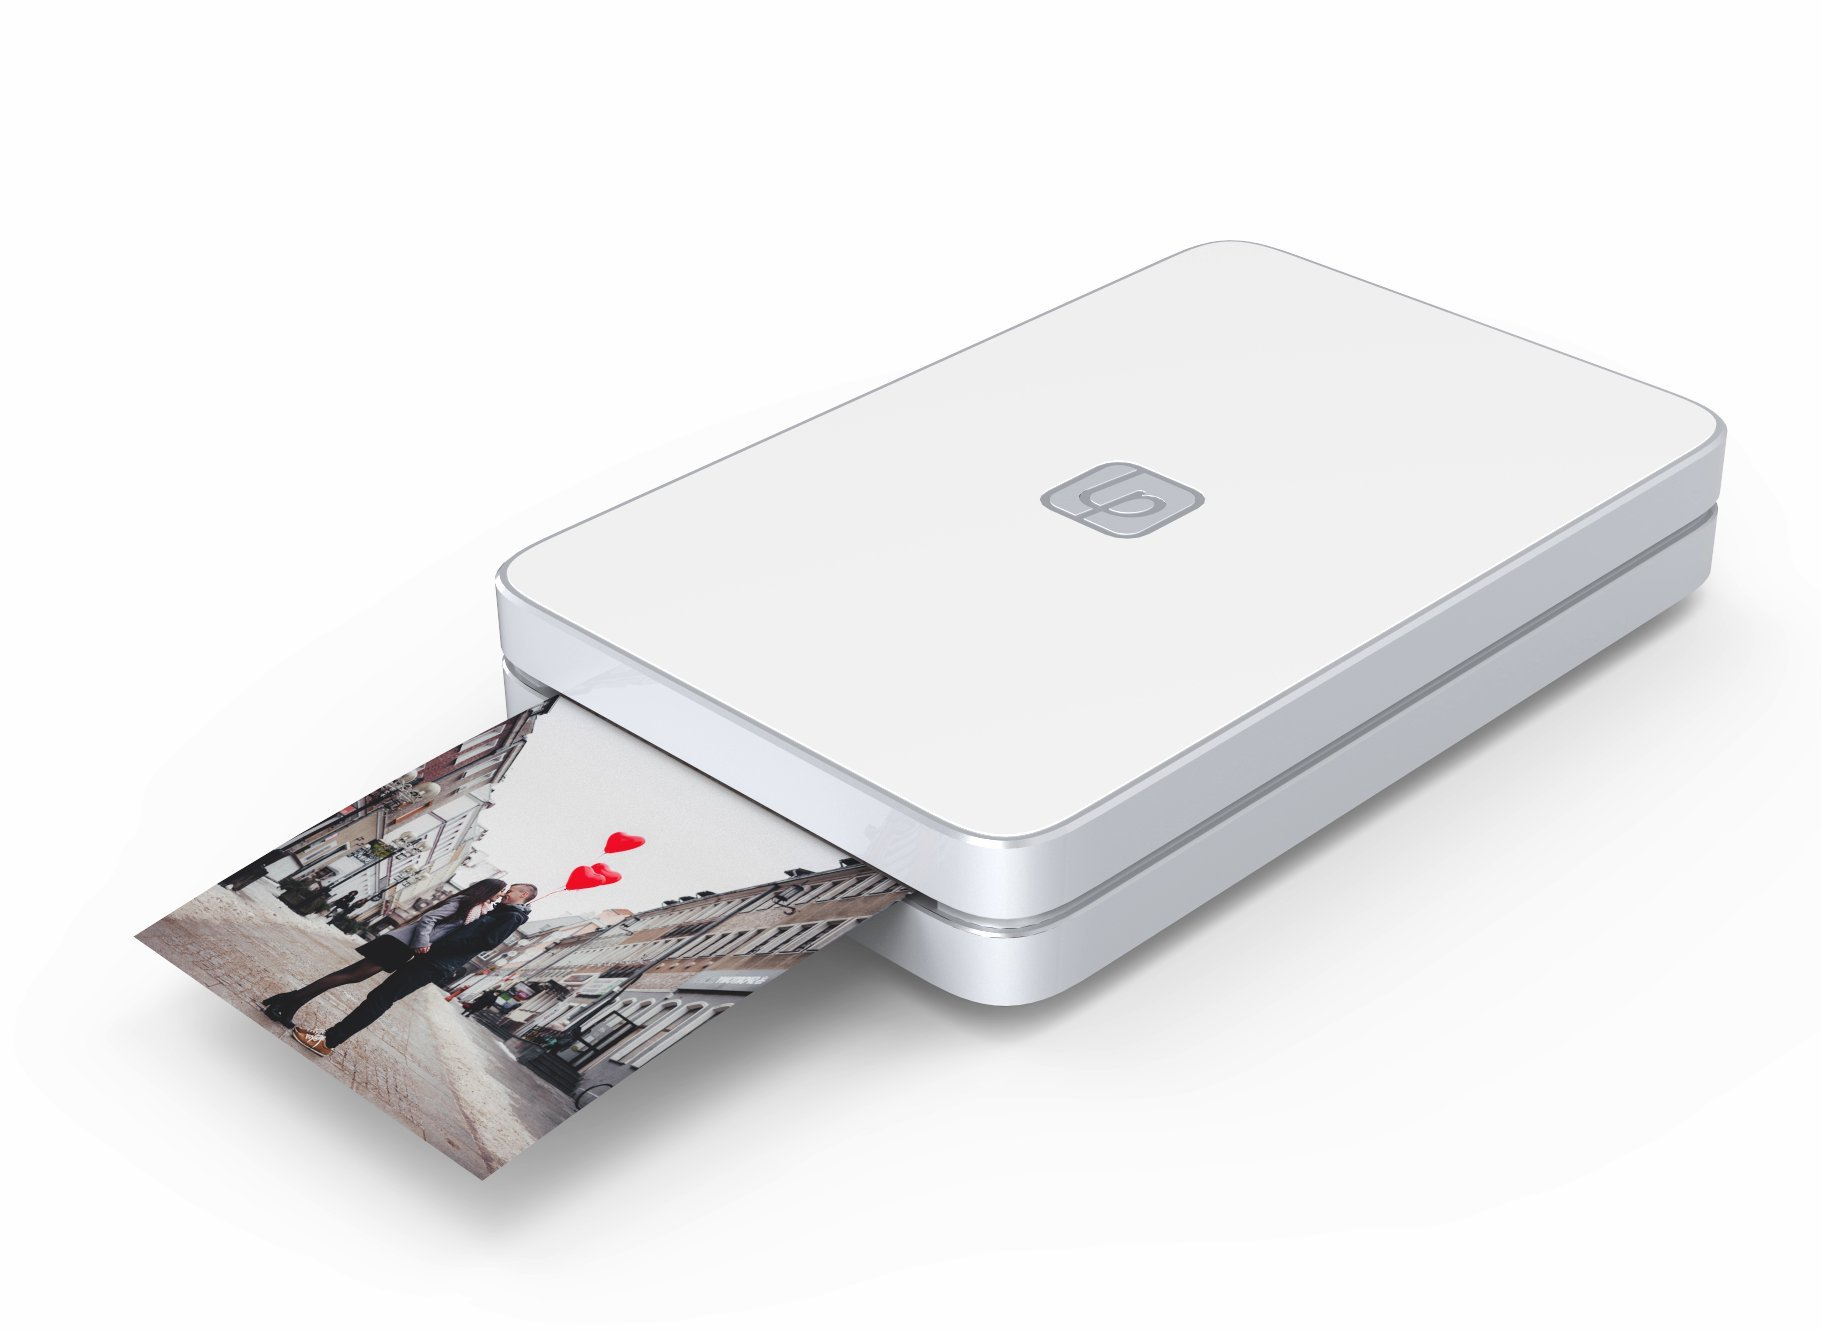 Lifeprint 2x3 Portable Photo and Video Printer for iPhone and Android. Make Your Photos Come to Life w/Augmented Reality - White